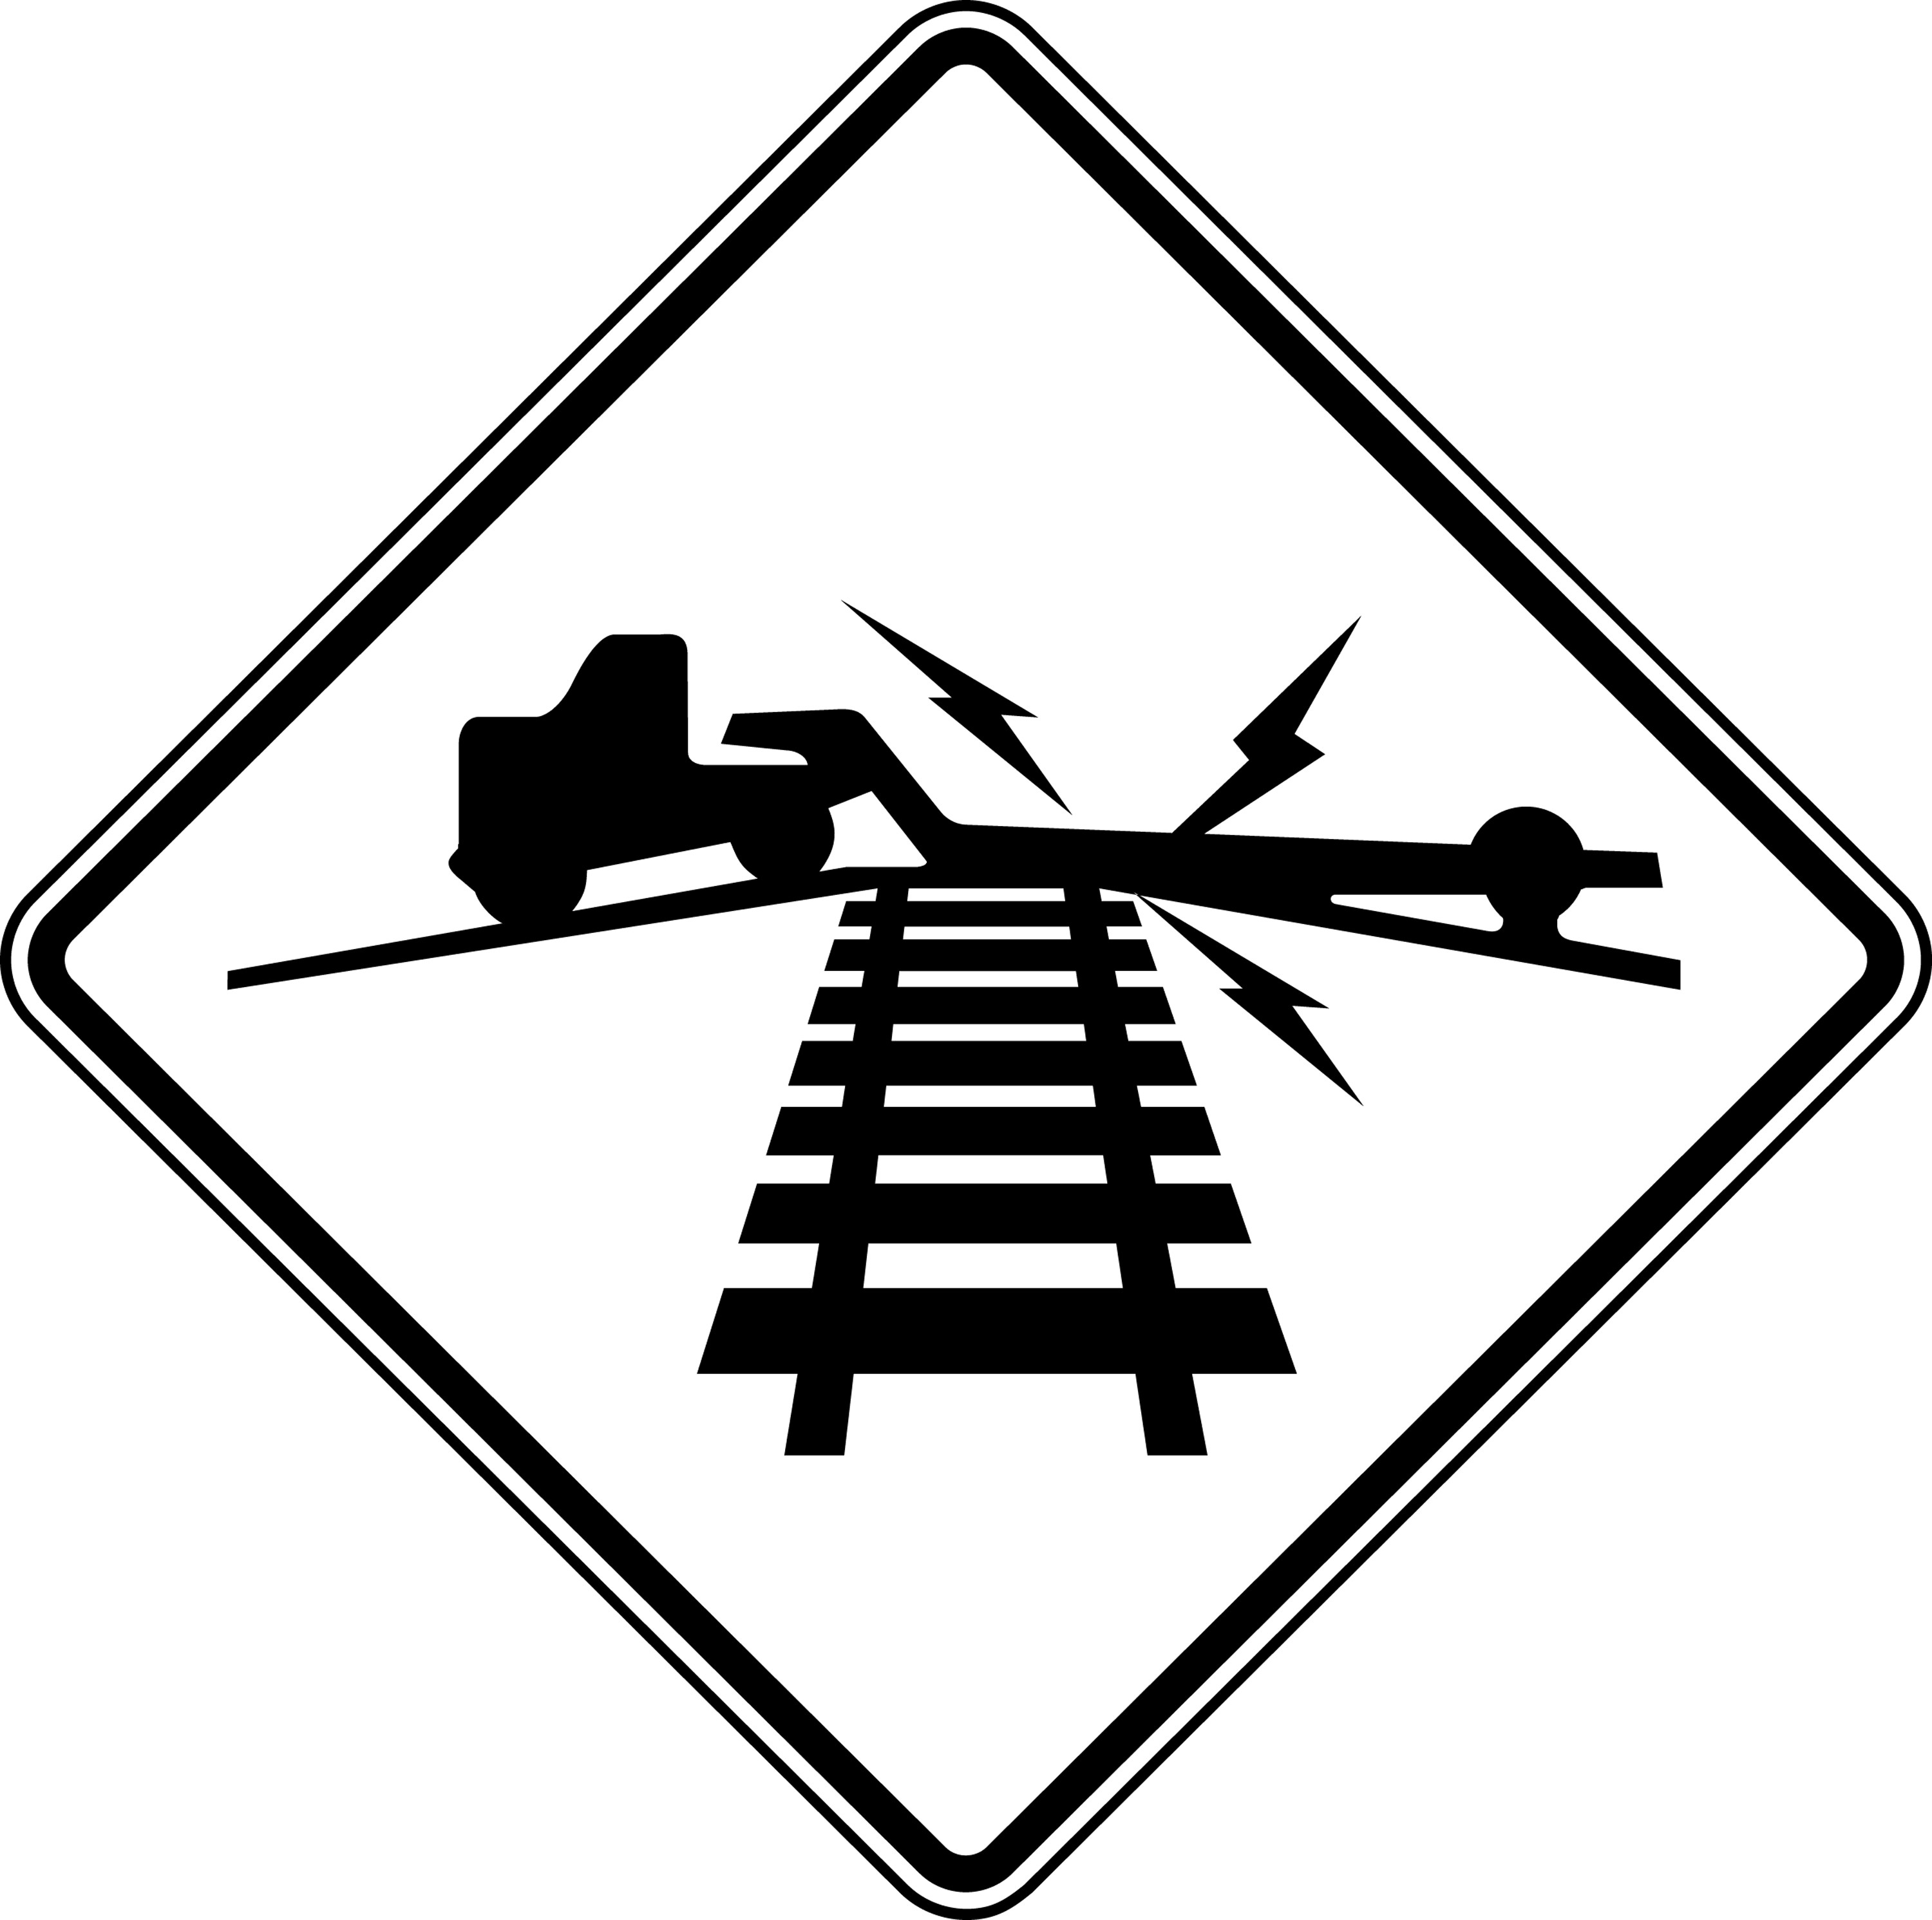 Low Ground Clearance Highway-Rail Grade Crossing, Black